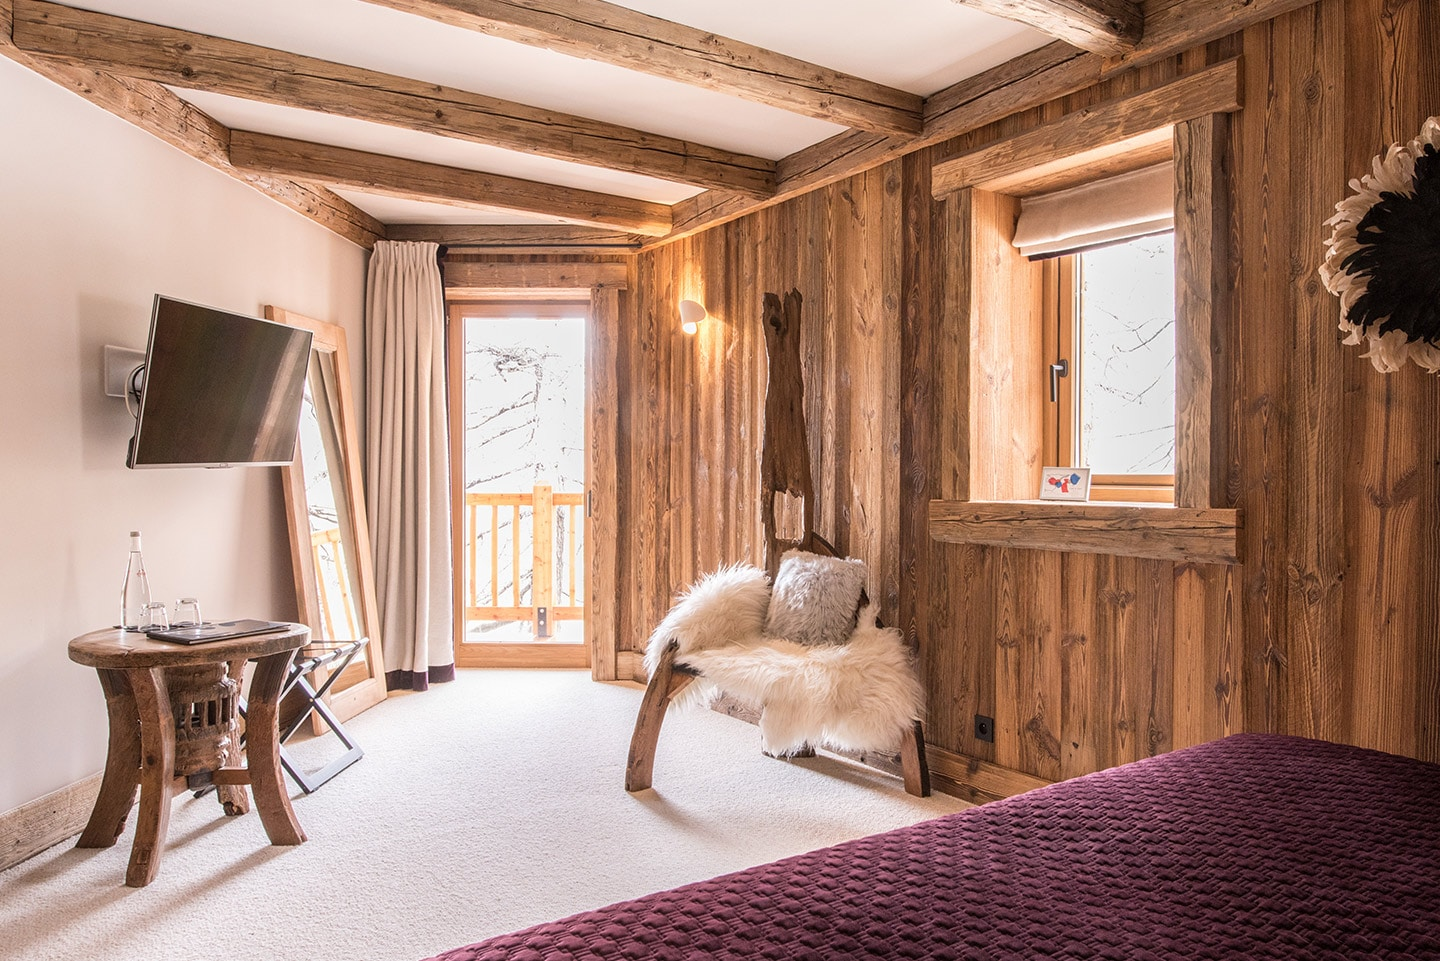 chalet-ovalala-val-disere-room3-view-from-bed